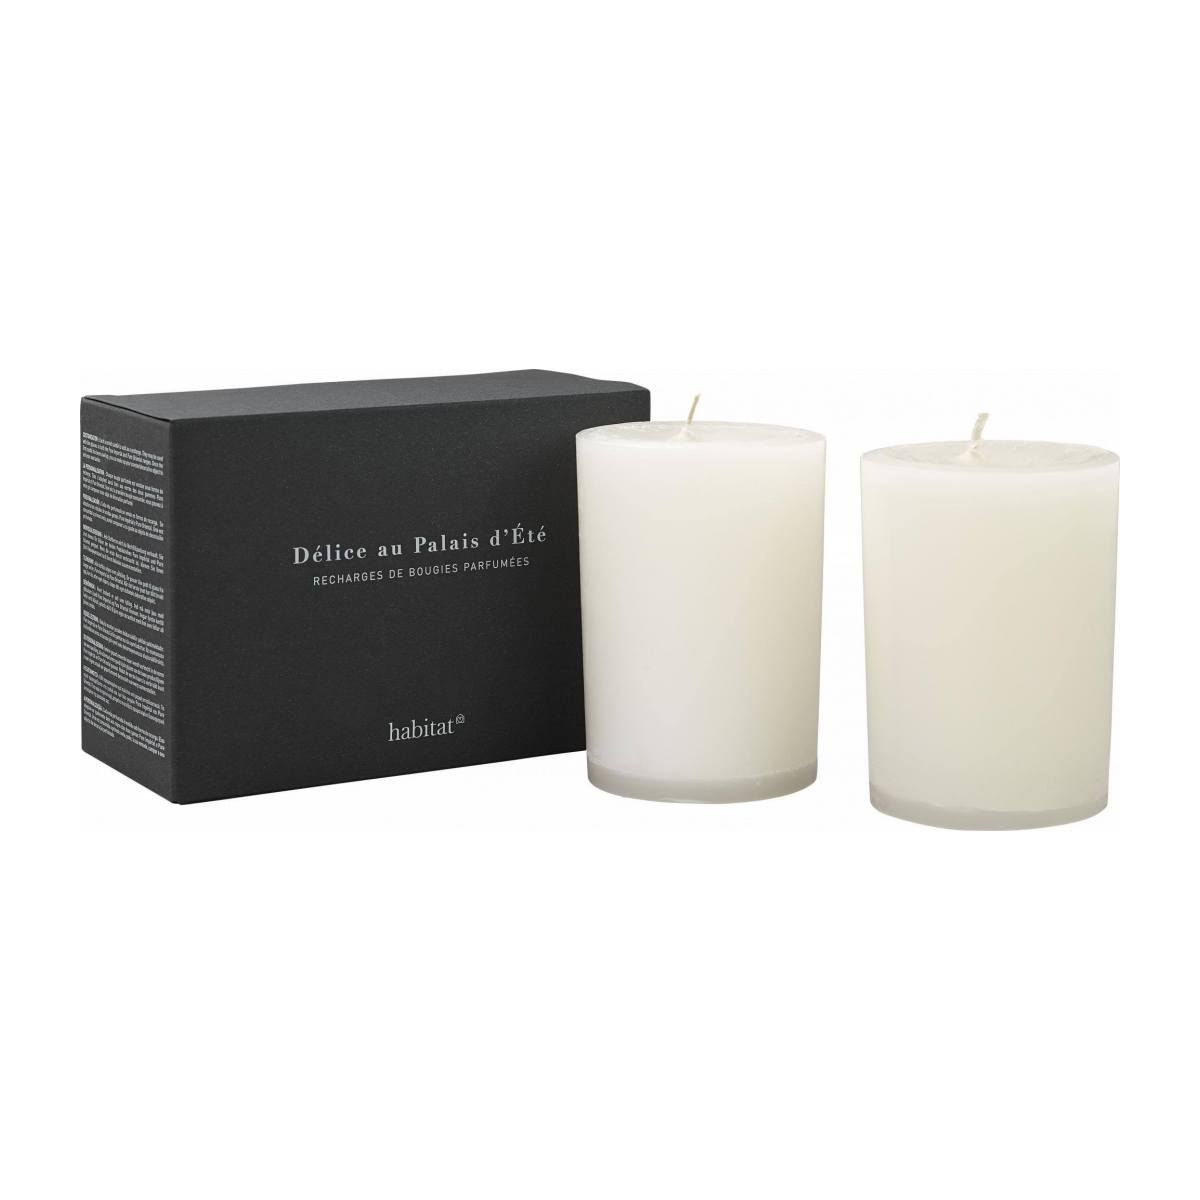 Refill for 2 medium Palais scented candles, 2 x 300g n°4